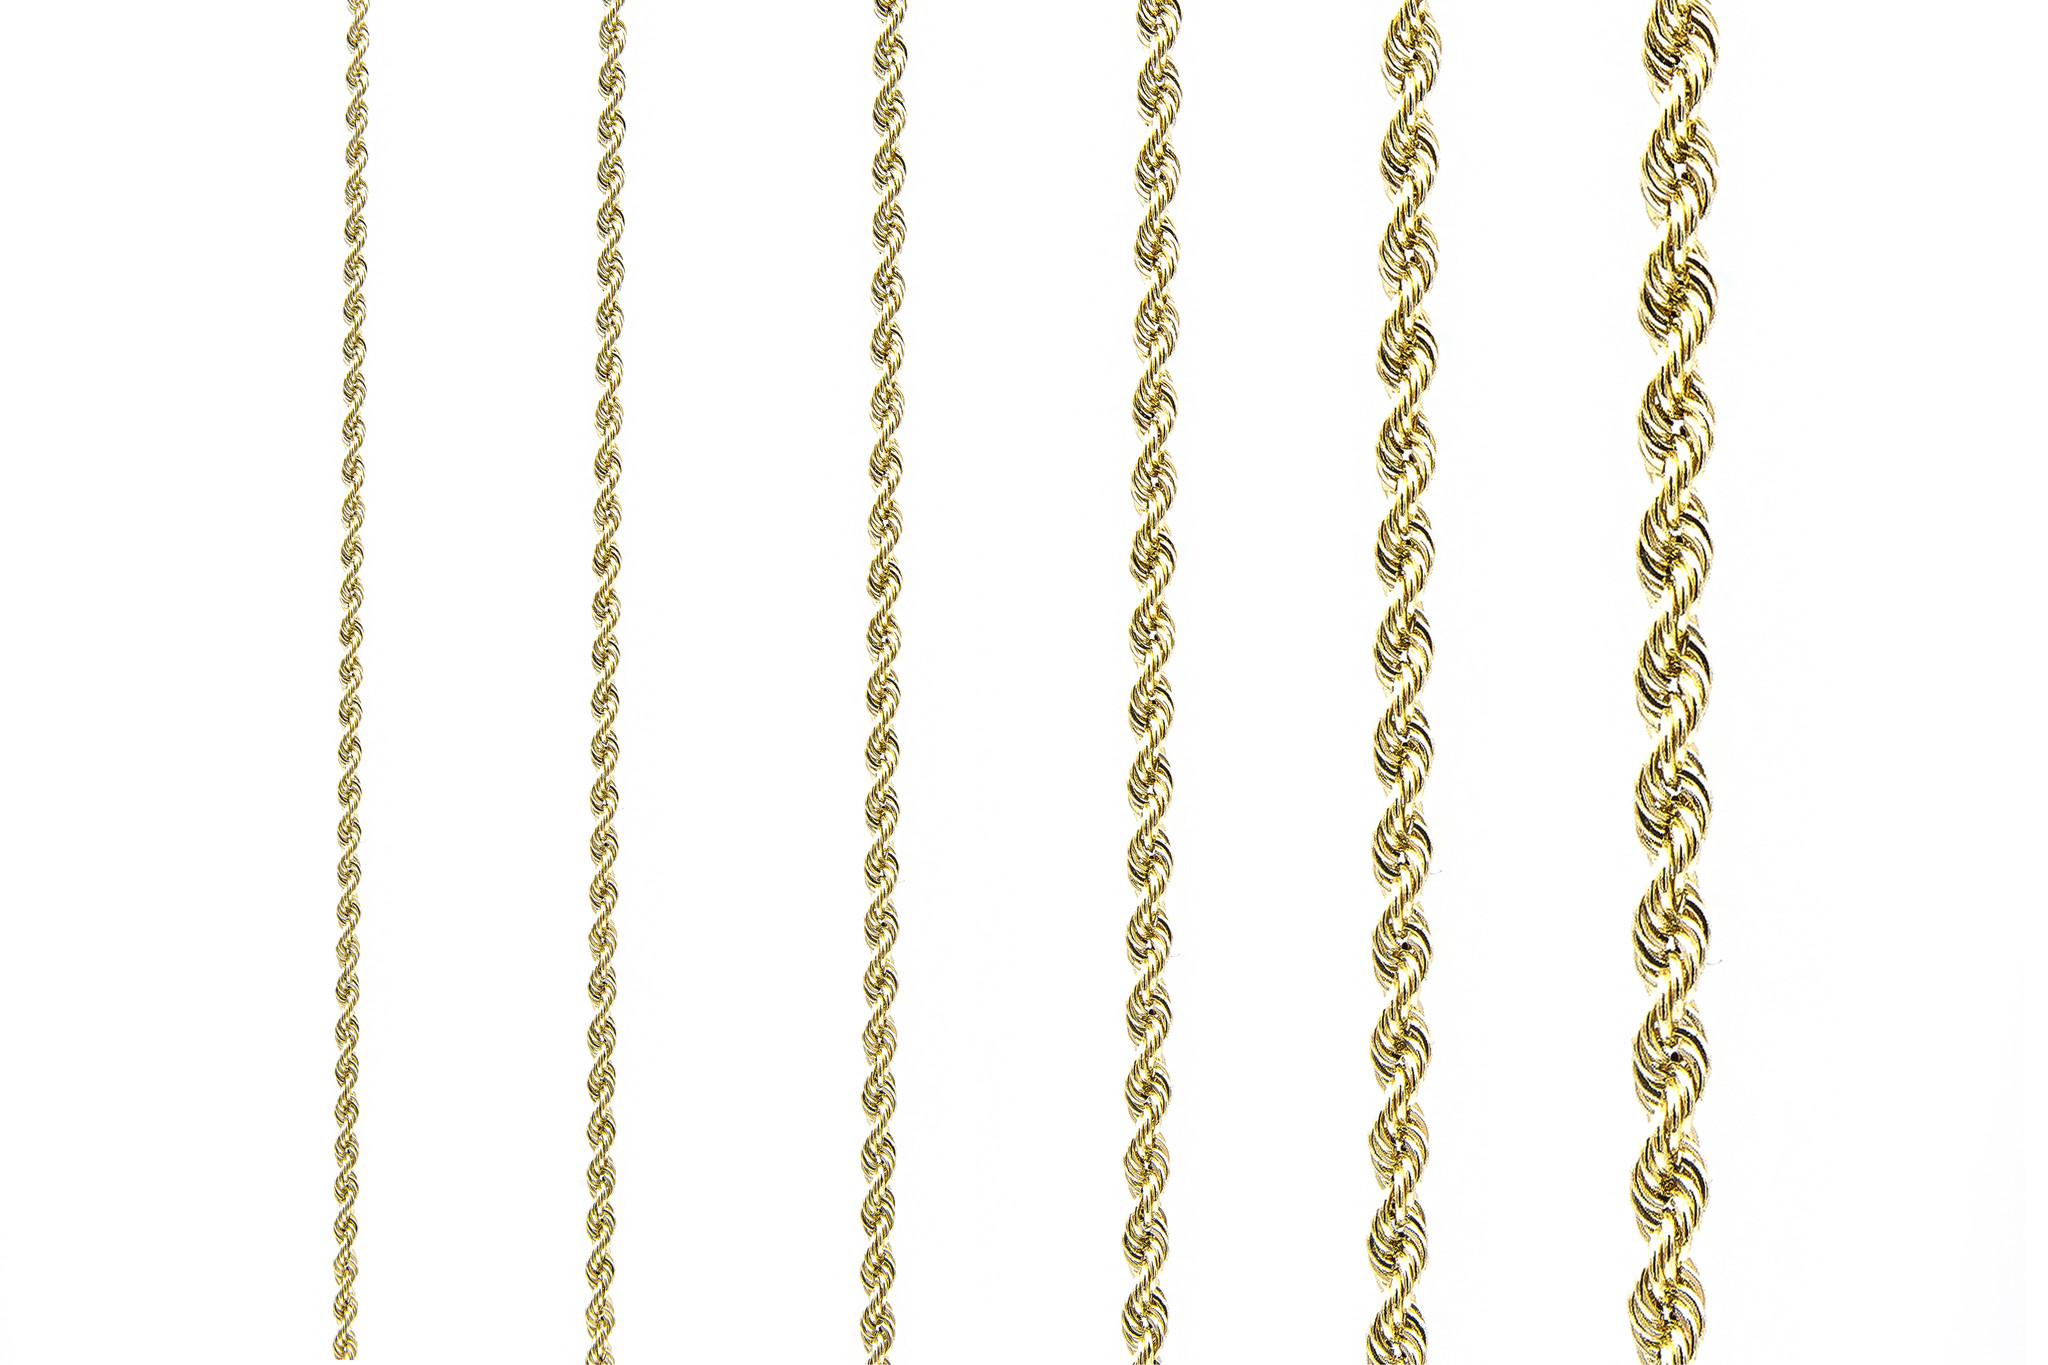 Rope Chain 14k-2 mm-2